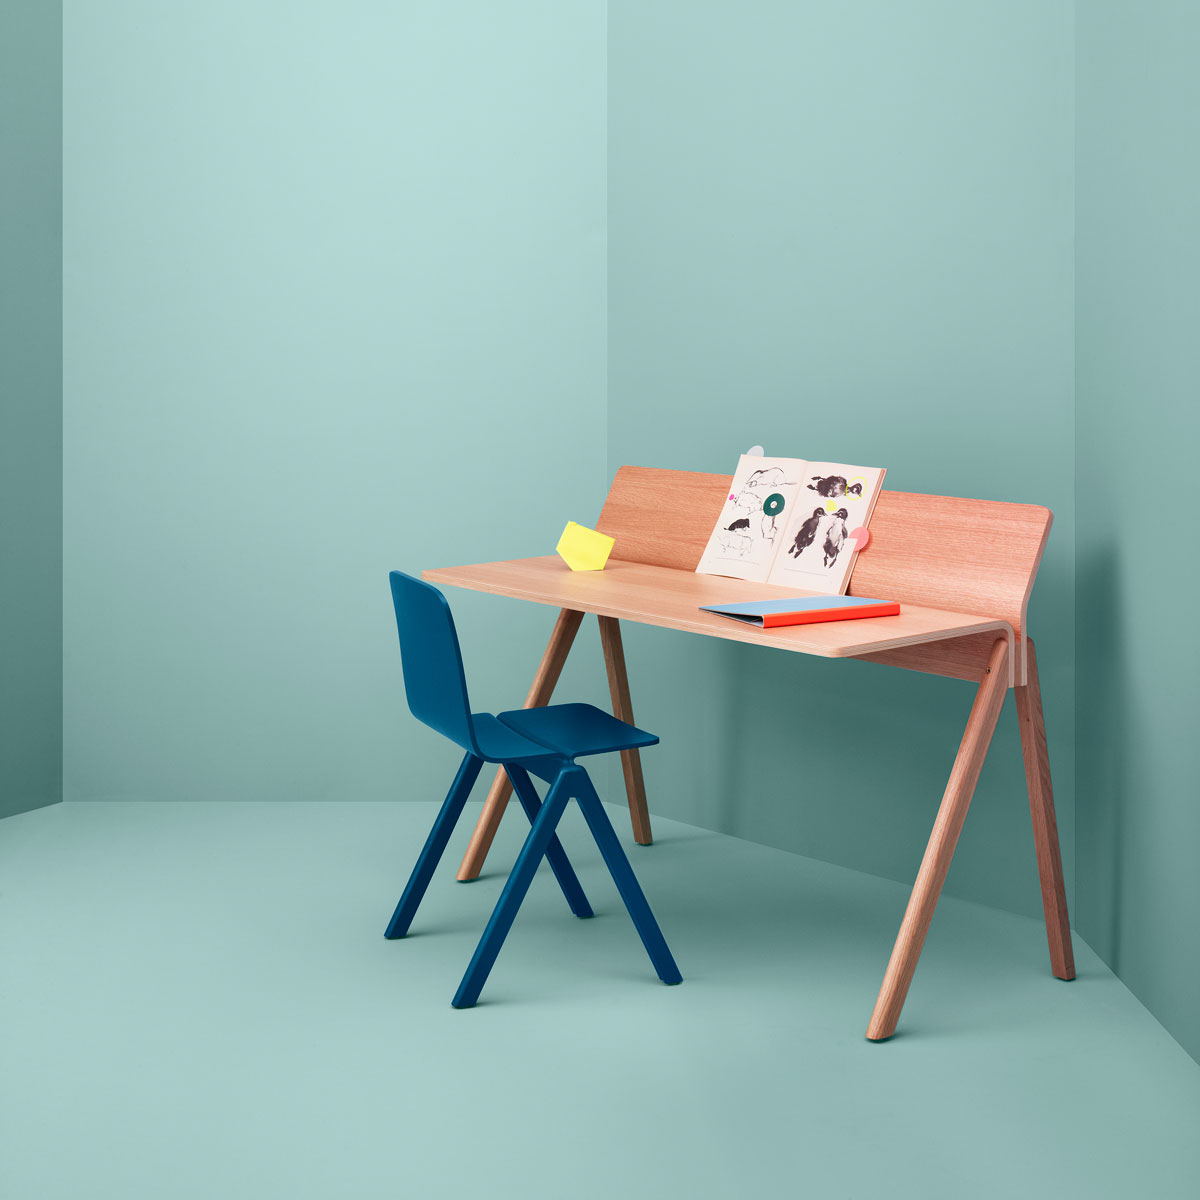 Hay cph190 copenhague moulded plywood desk door ronan Hay design